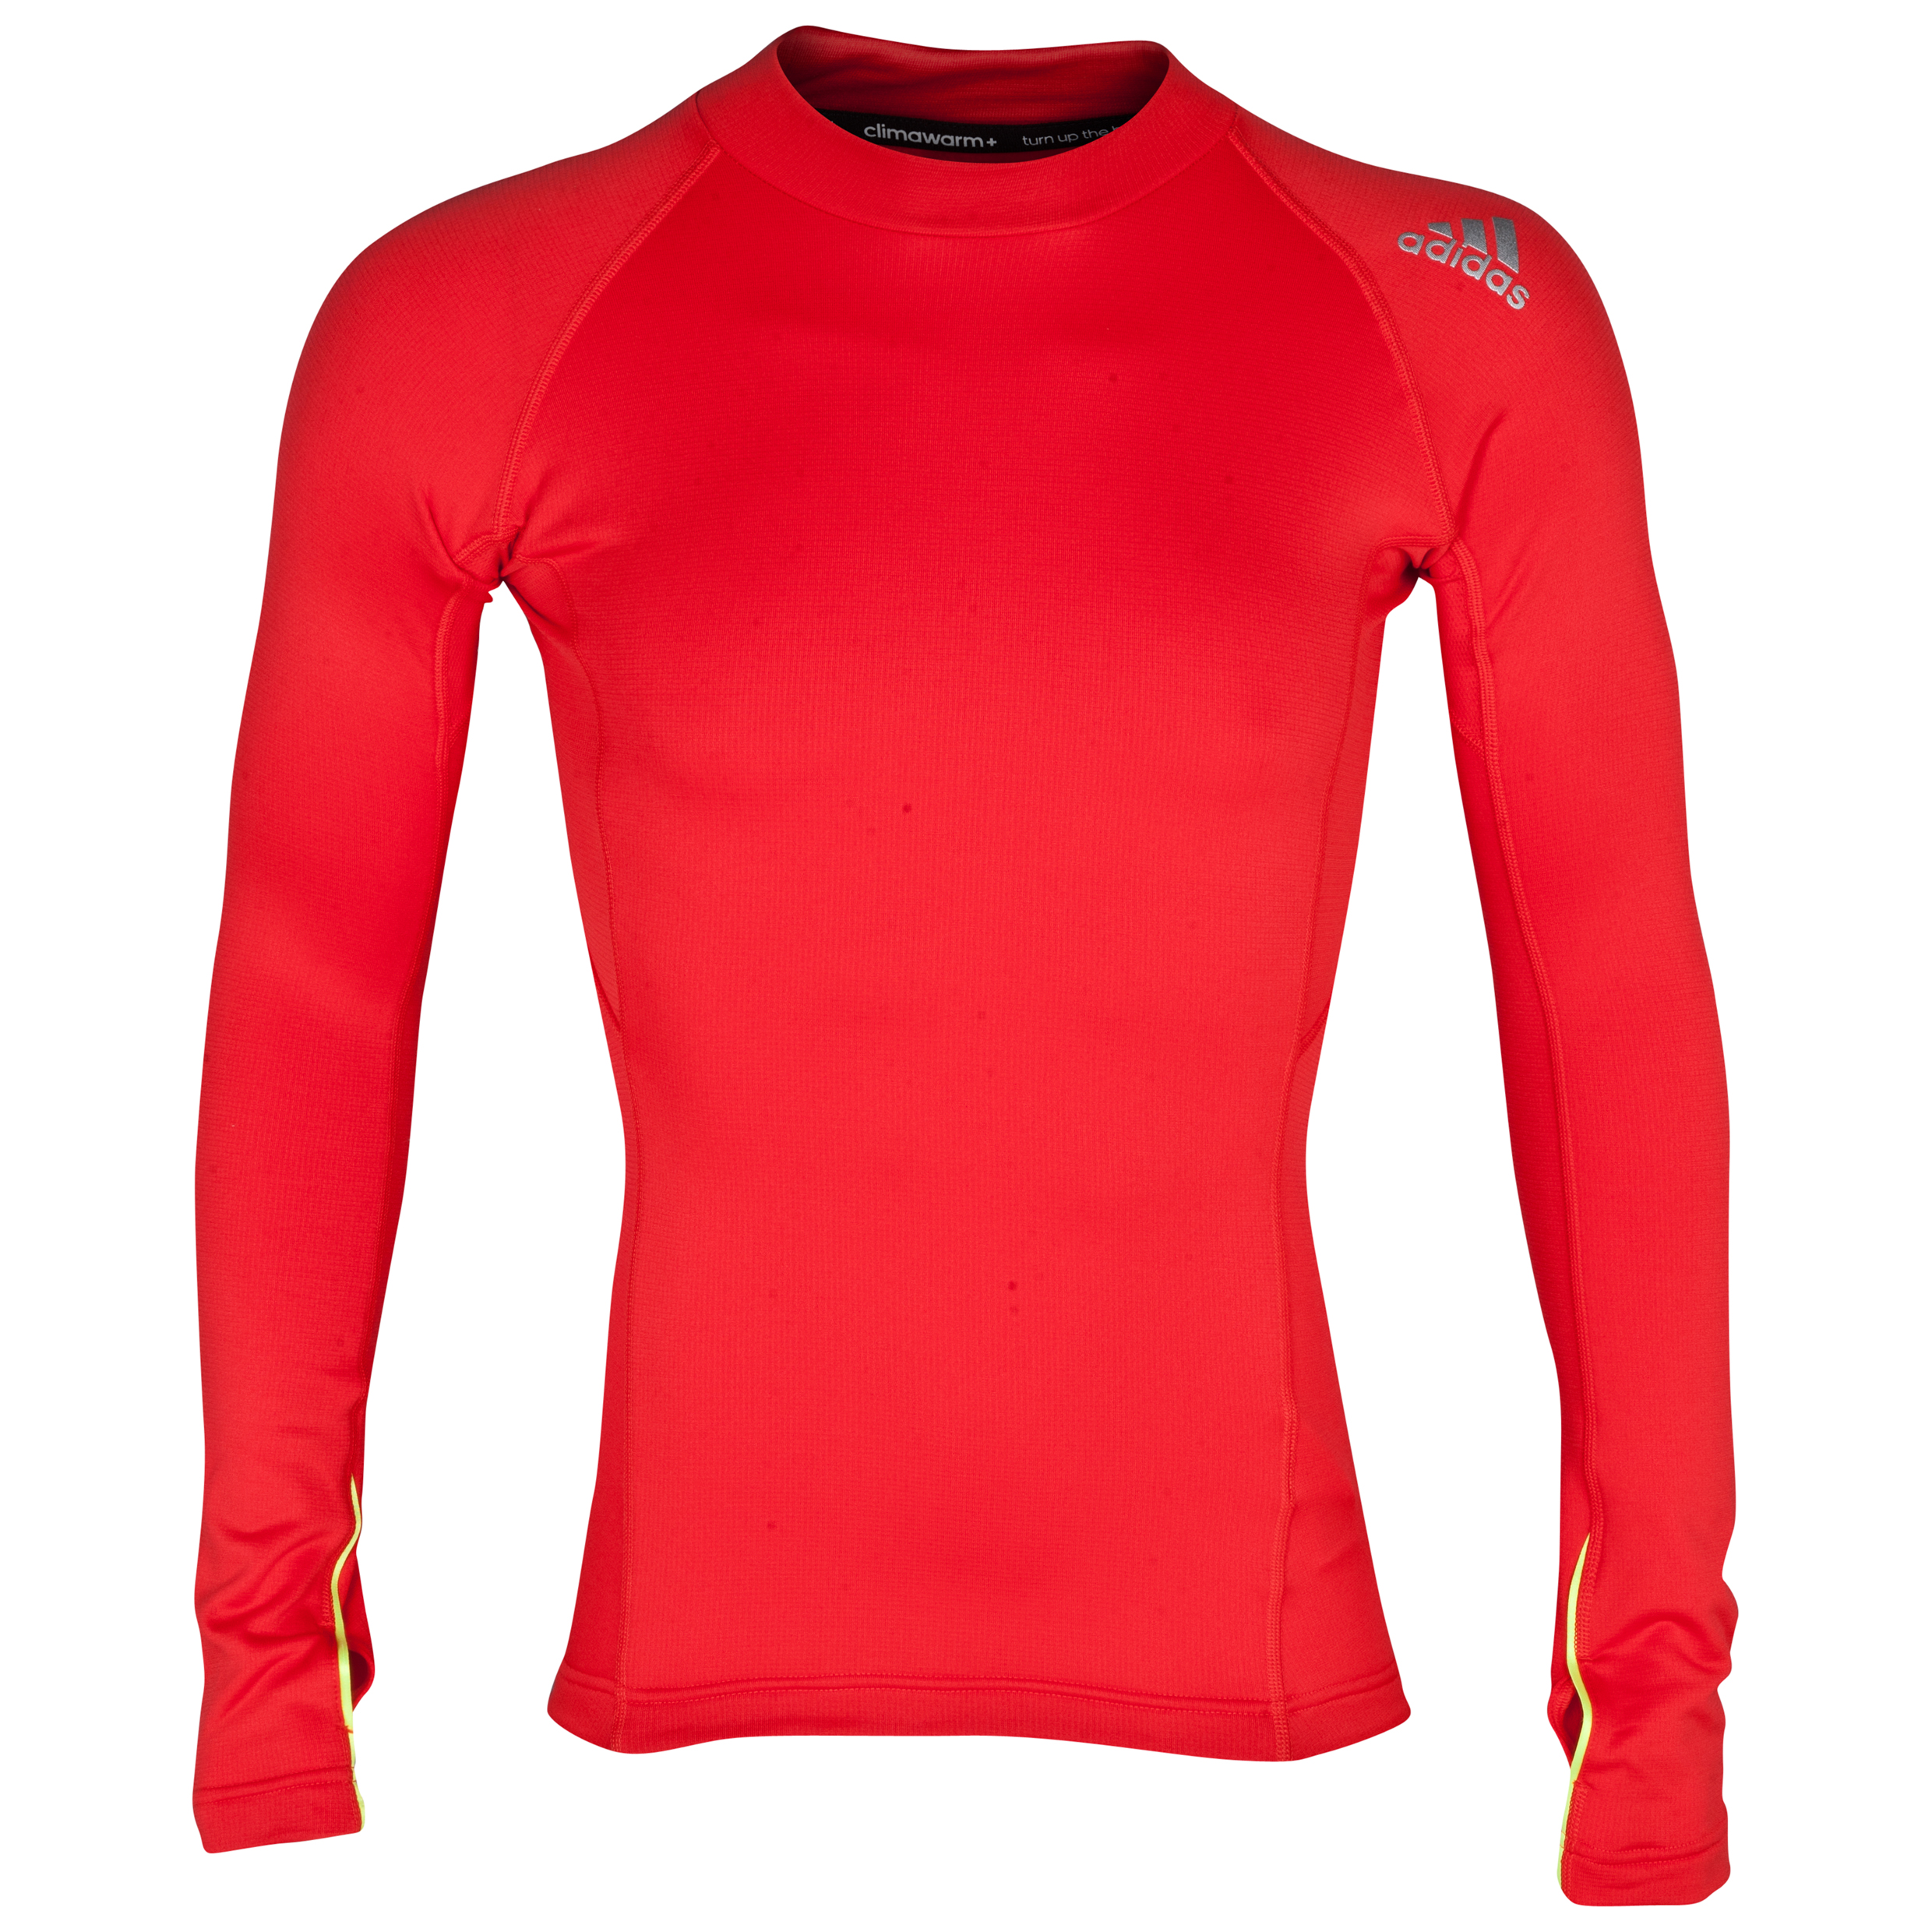 Adidas TechFit Hollow Mock Base Layer Top Red